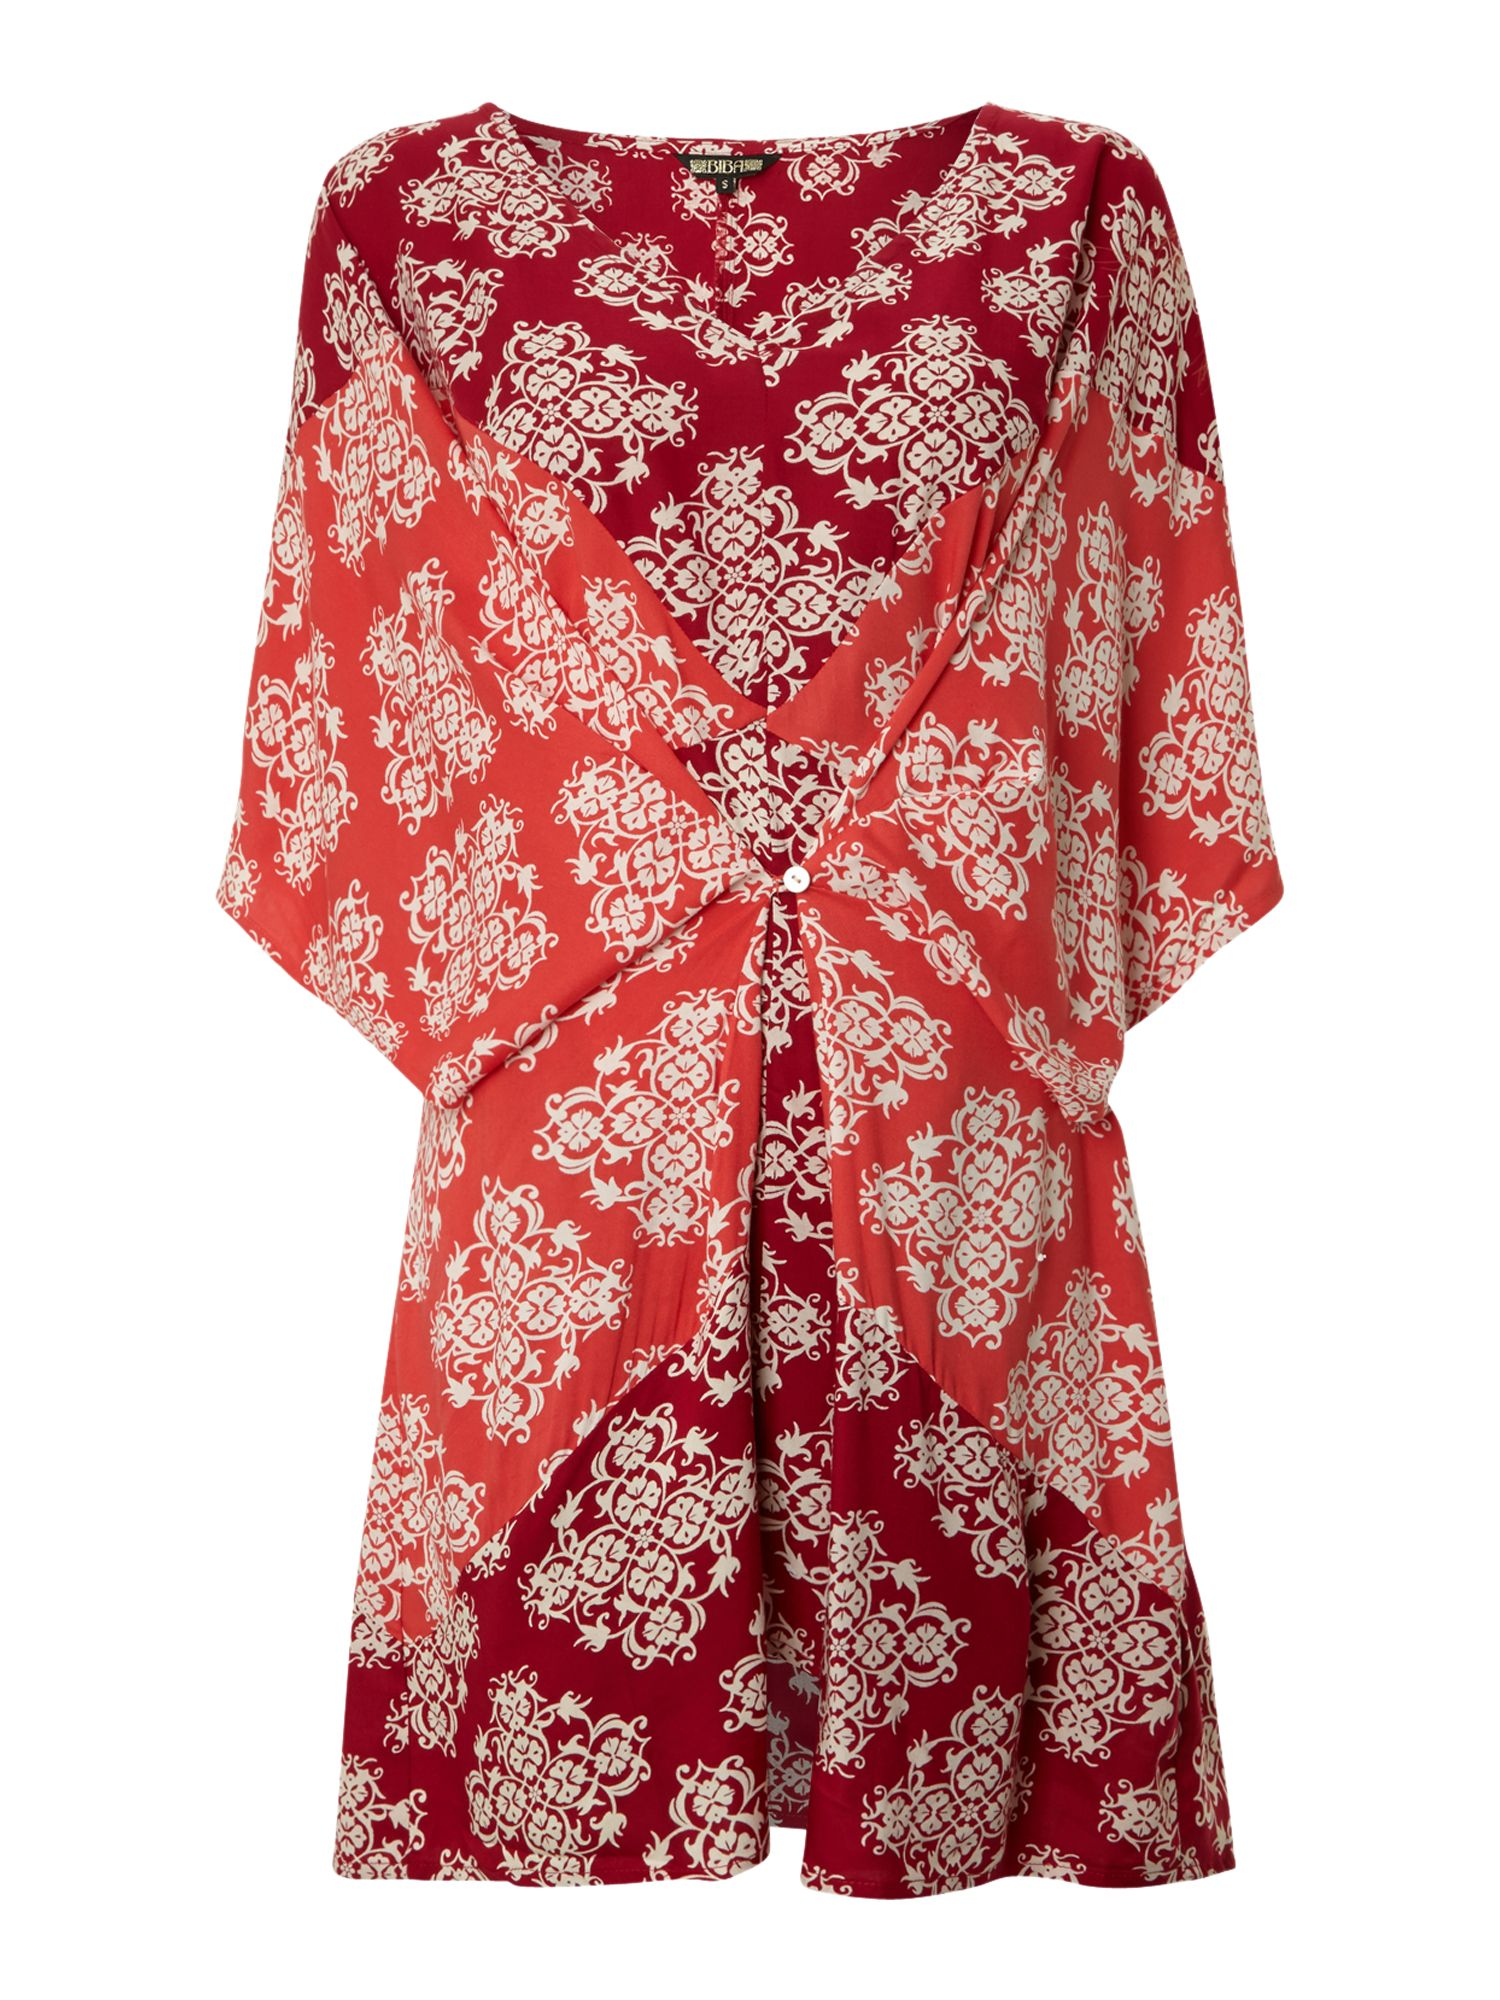 Paisley button beach cover up